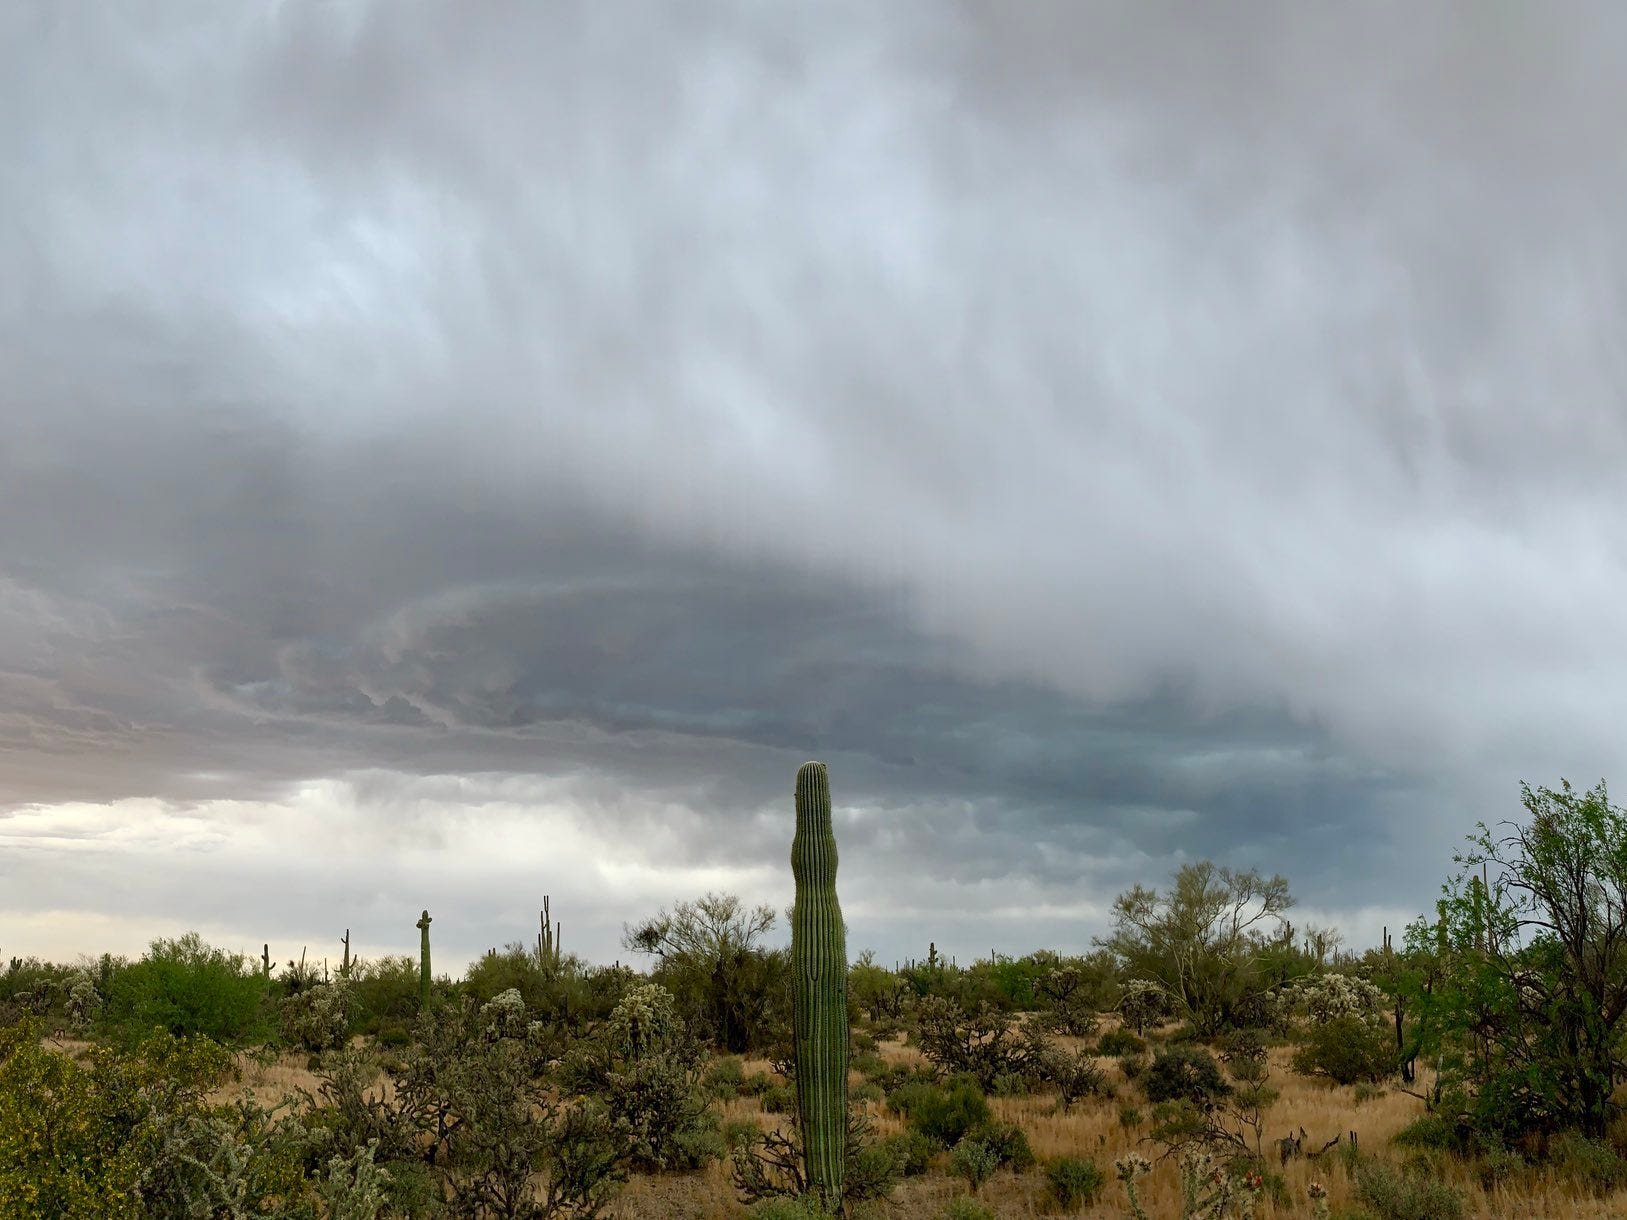 A cactus seems to point to the menacing storm clouds above in this image captured by National Weather Service Skywarn Spotter Lori Grace Bailey south of Florence on Tuesday, April 23, 2019.